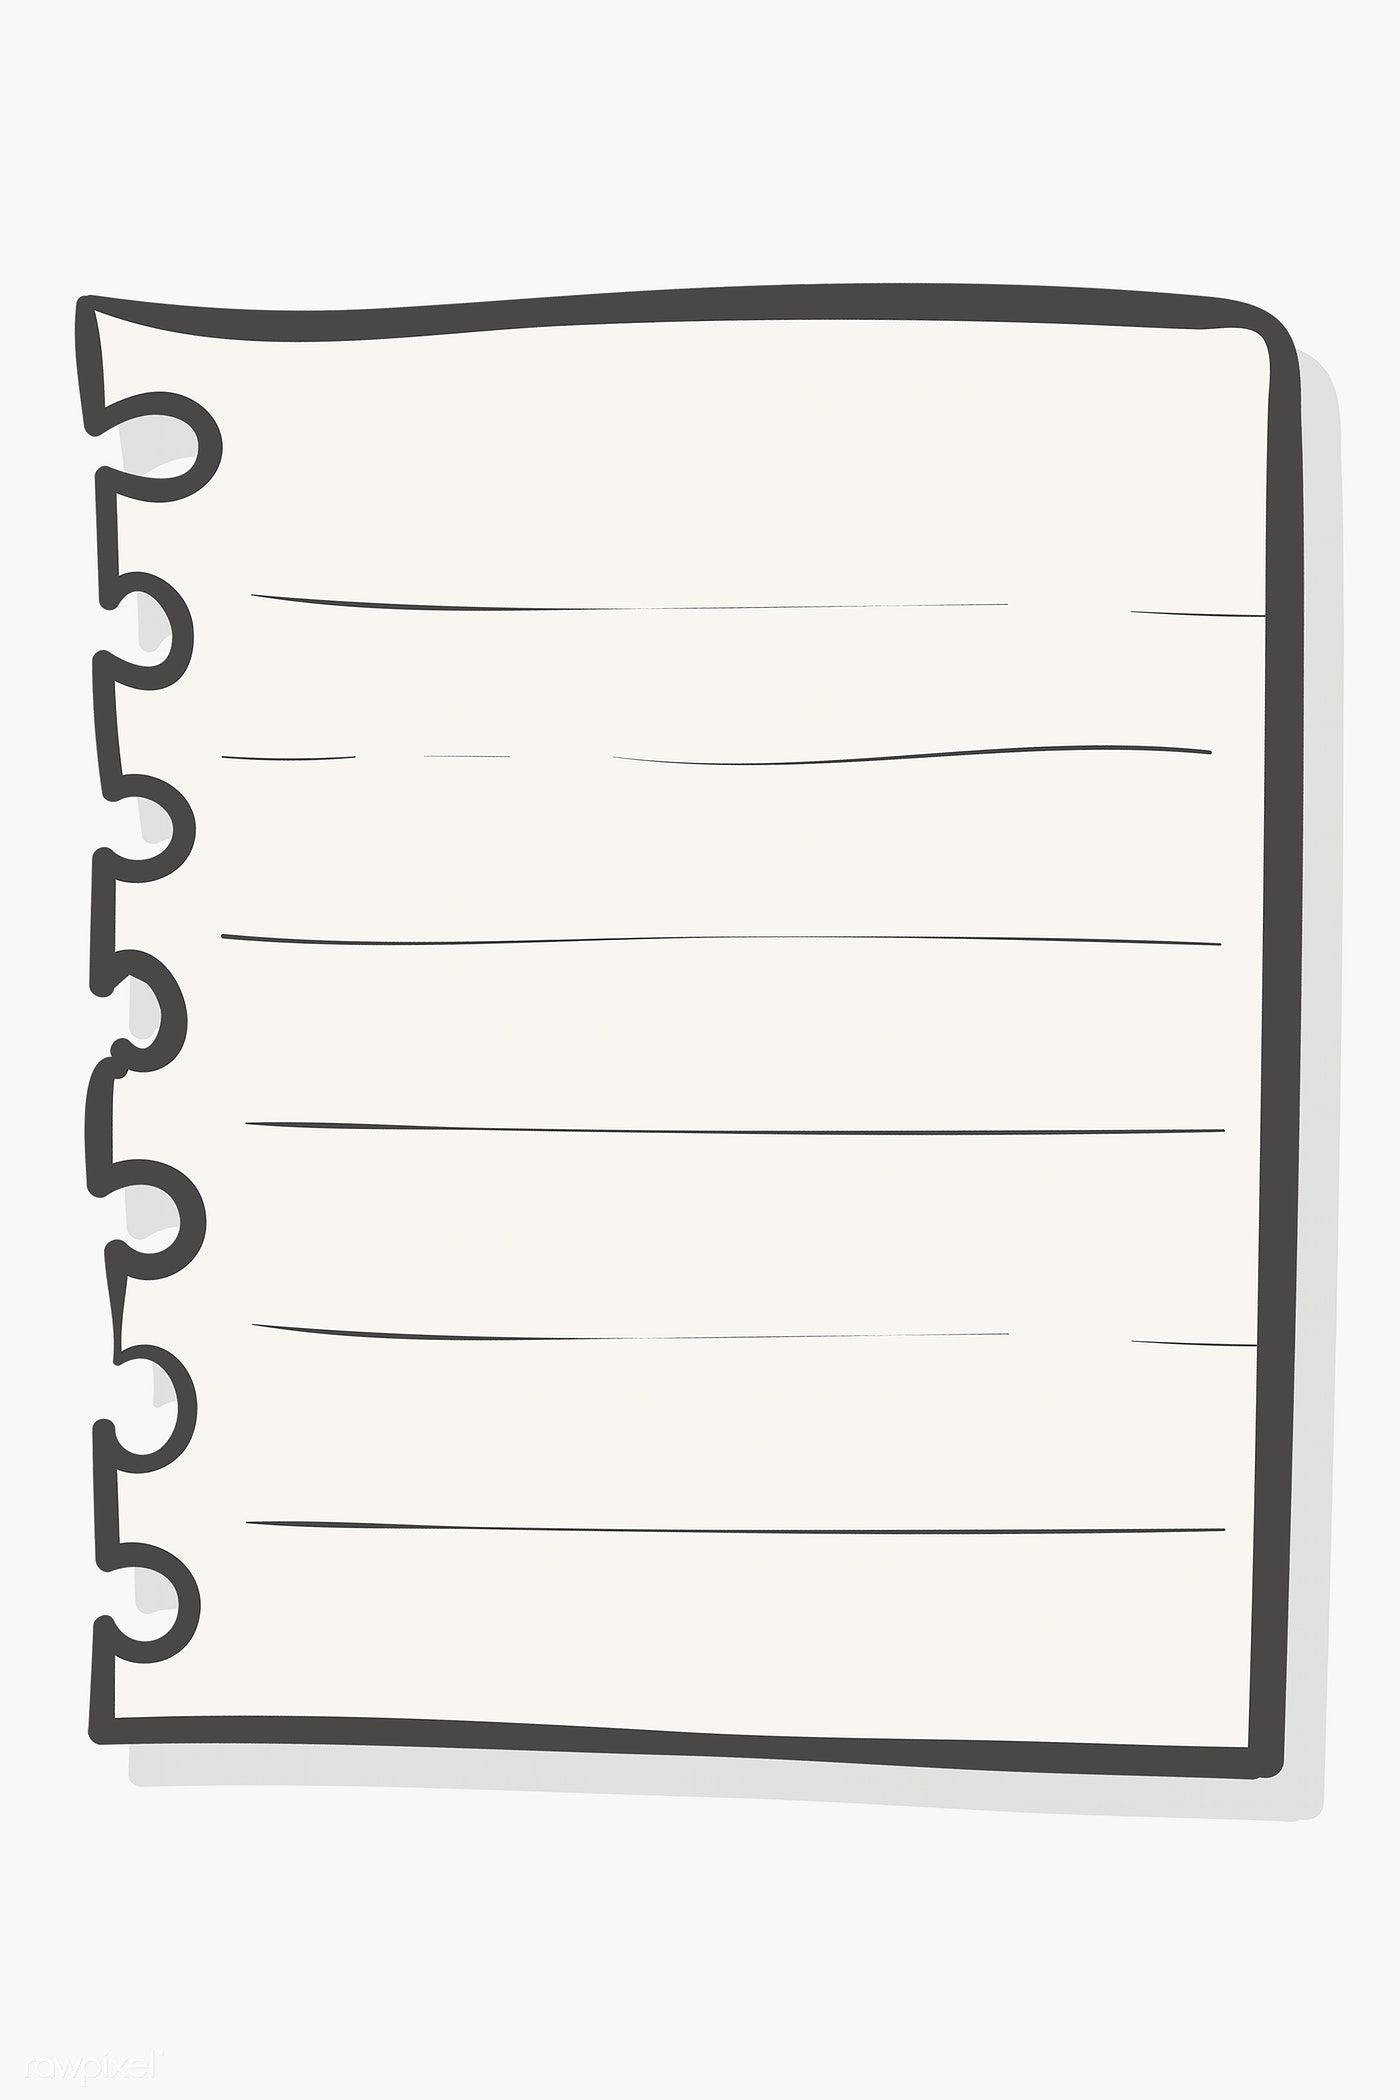 Torn Sheet Of Paper From Spiral Notebook Transparent Png Free Image By Rawpixel Com Chayanit Sheet Of Paper Paper Background Design Notebook Drawing